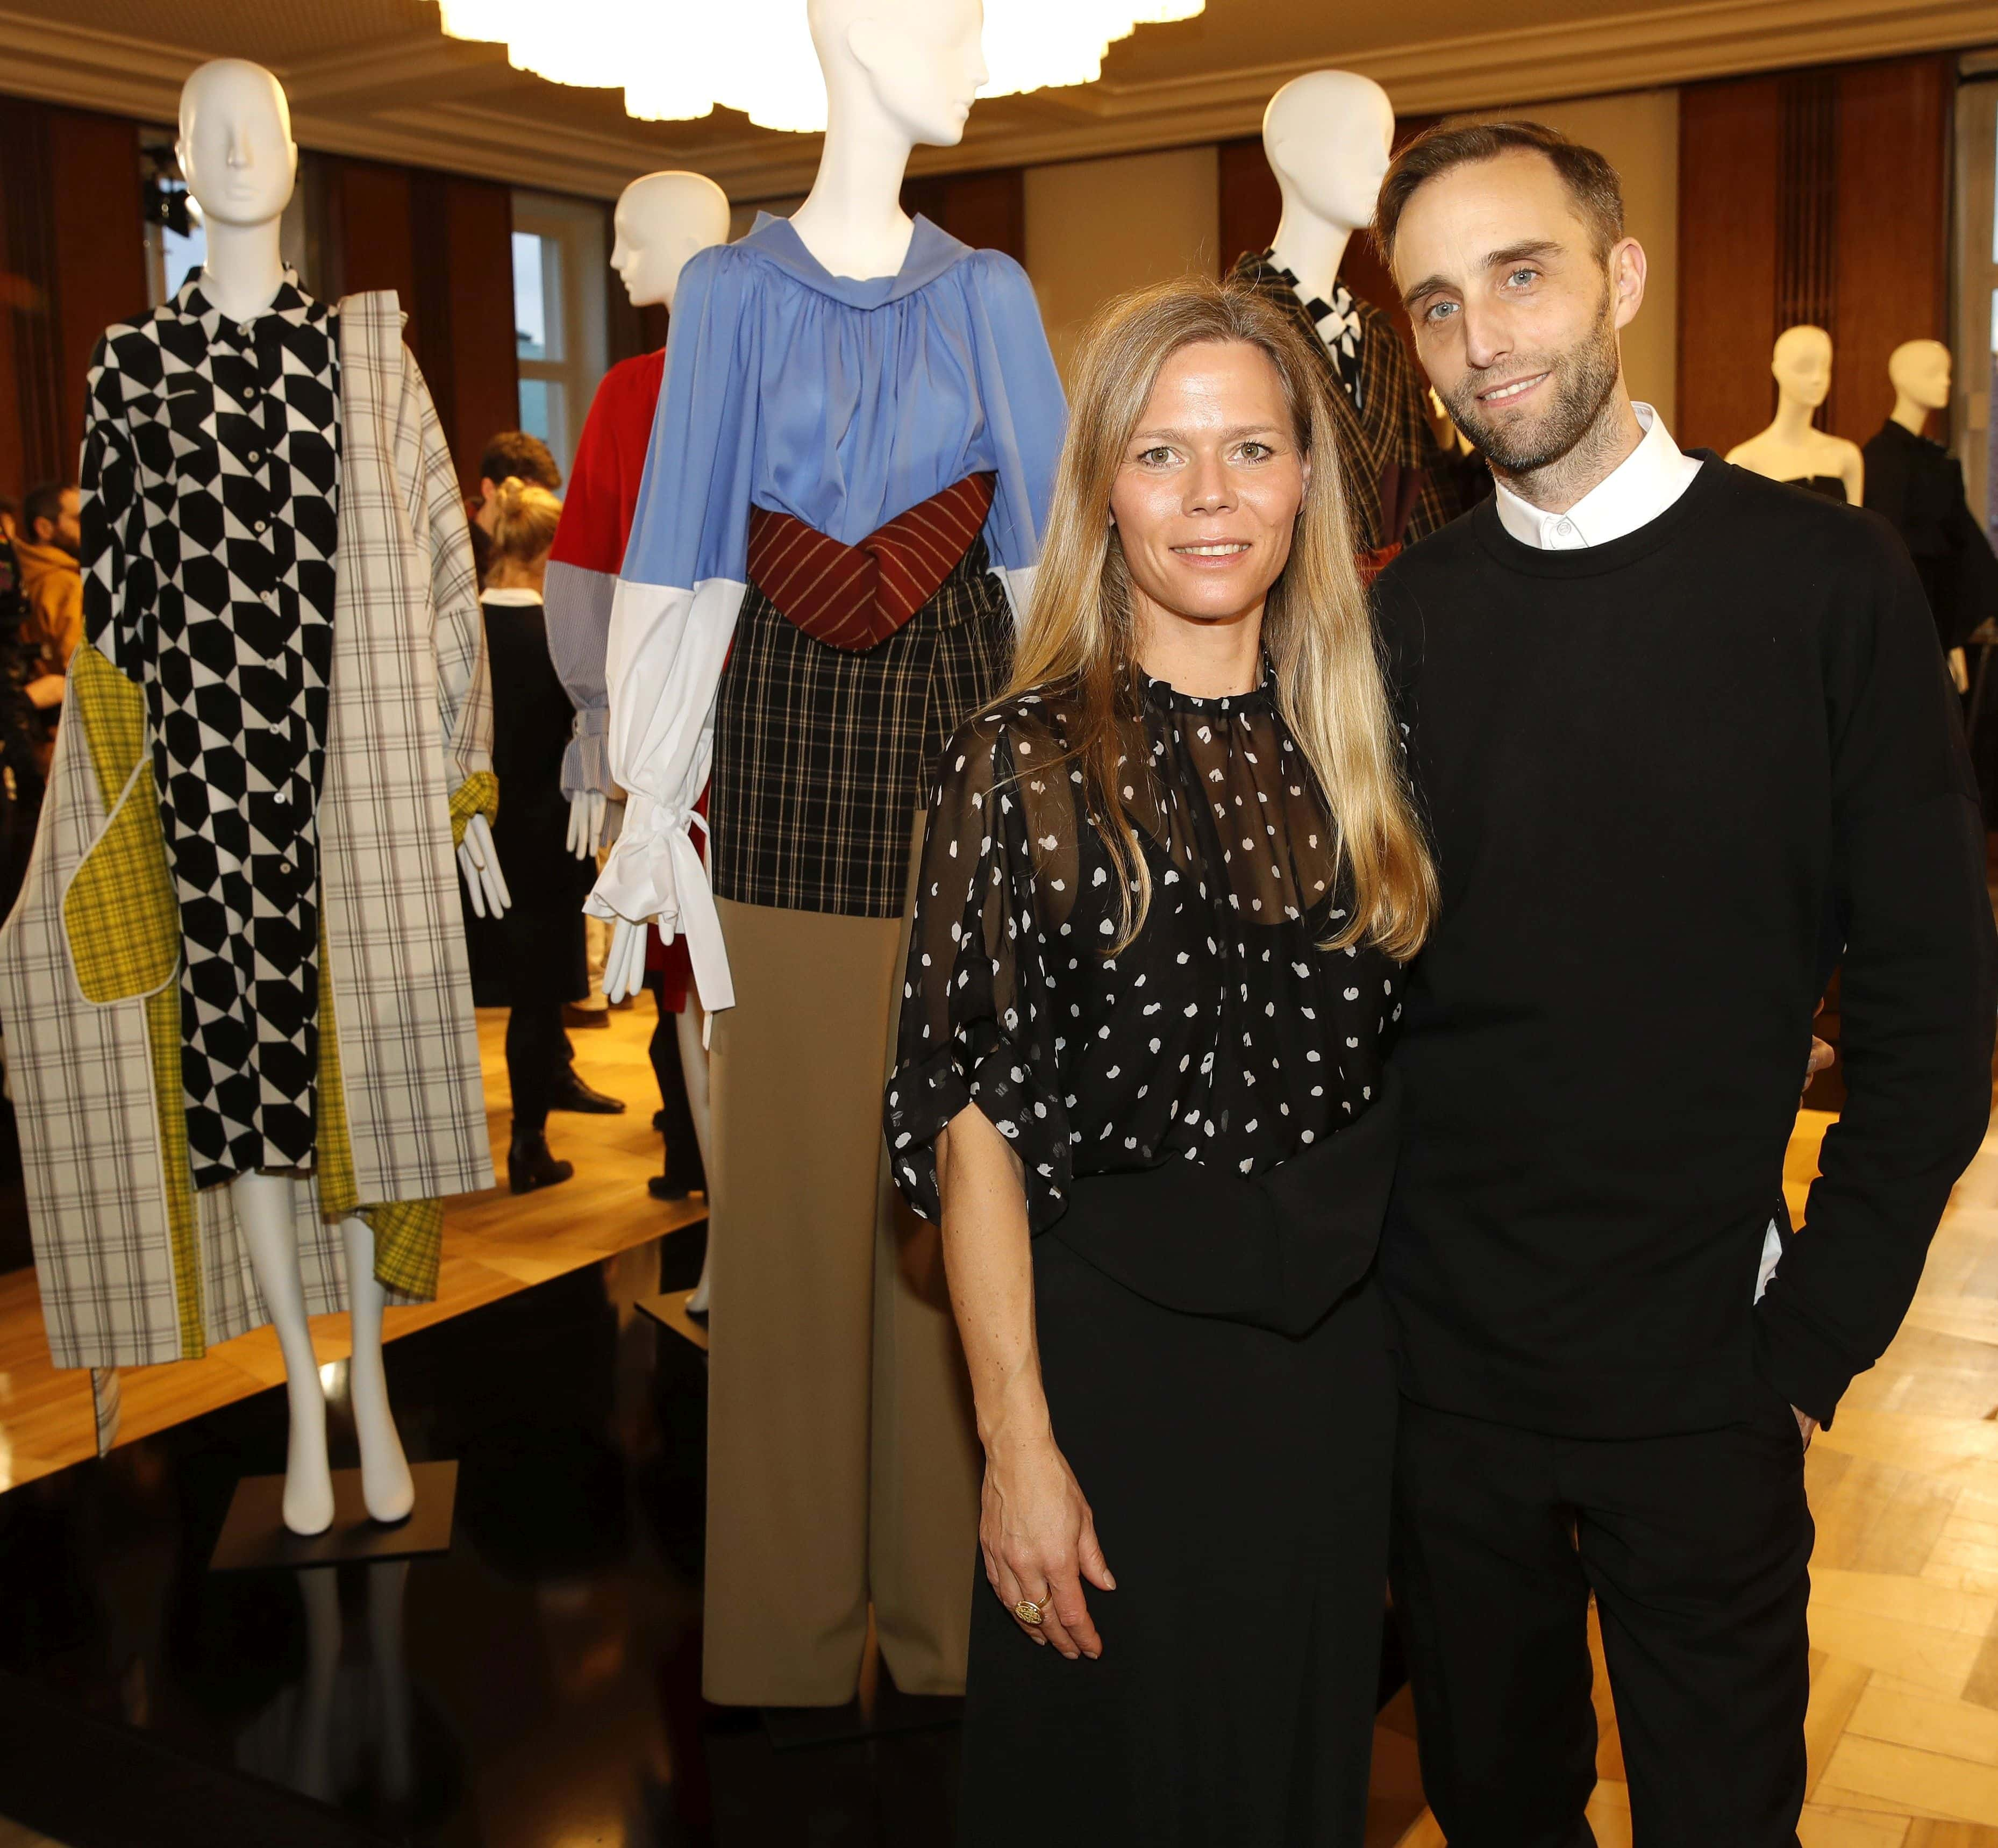 Antonia Goy and Björn Kubeja of Working Title attend Vogue Salon during 'Der Berliner Salon' AW 18/19 at Kronprinzenpalais on January 16, 2018 in Berlin, Germany.